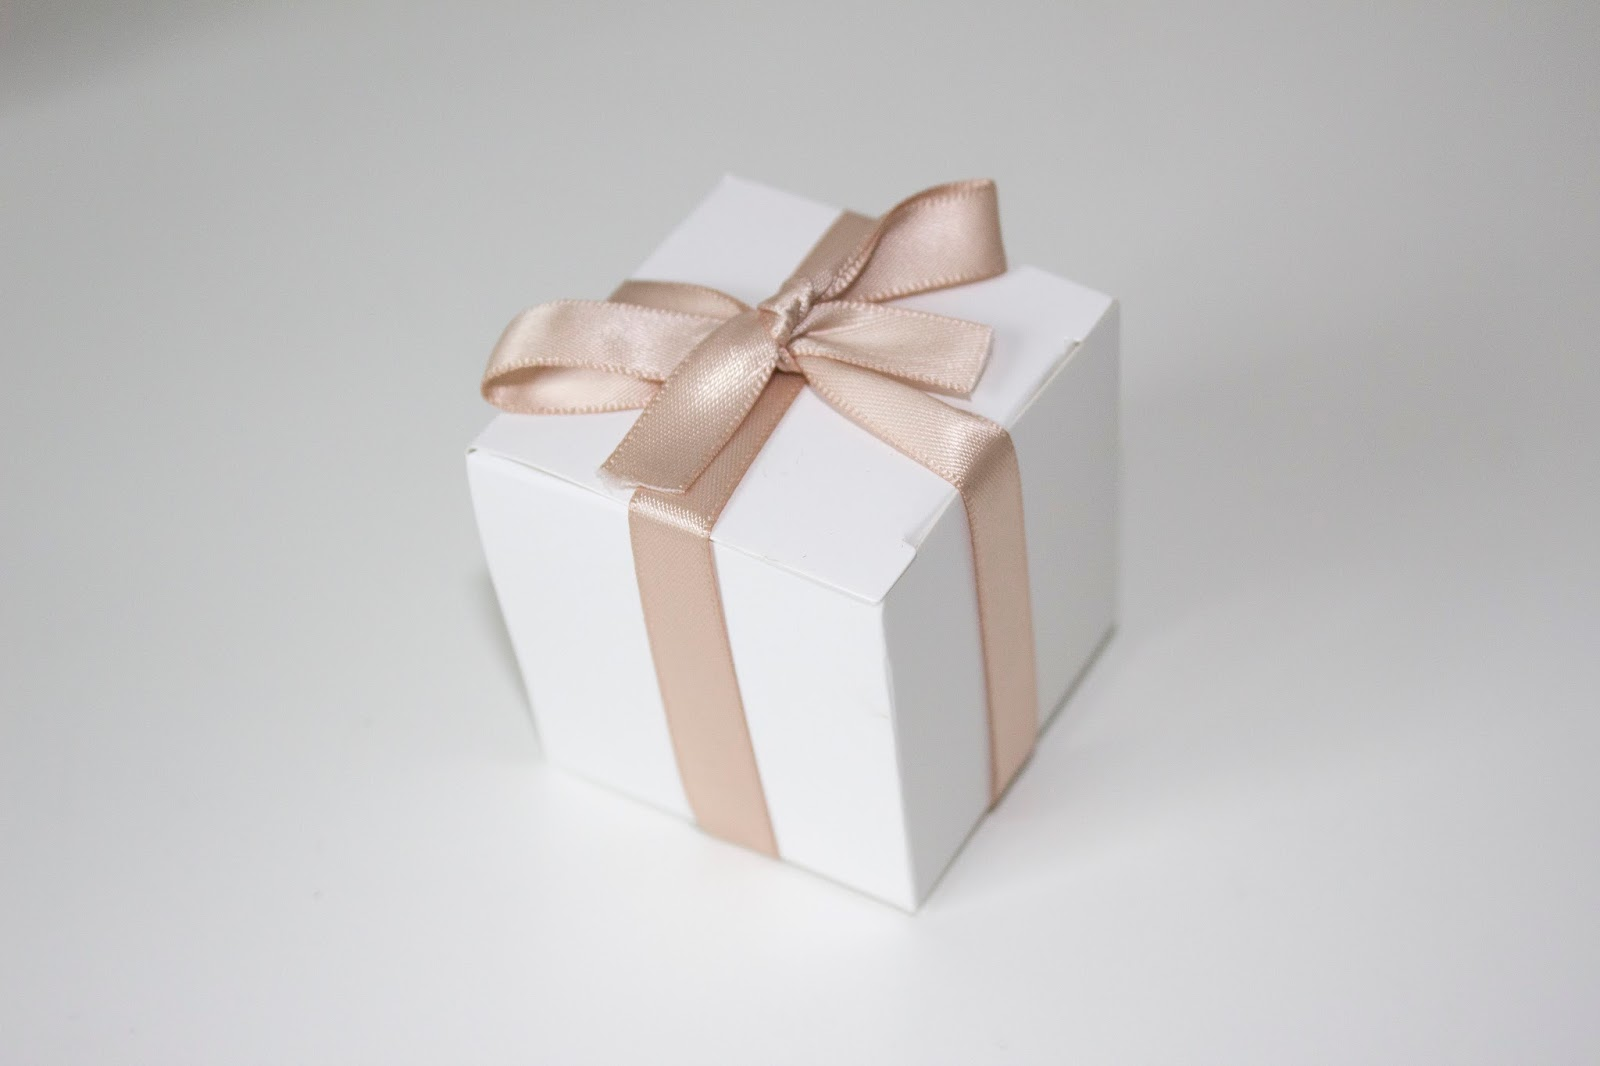 Elegant and Simple Wedding Favors